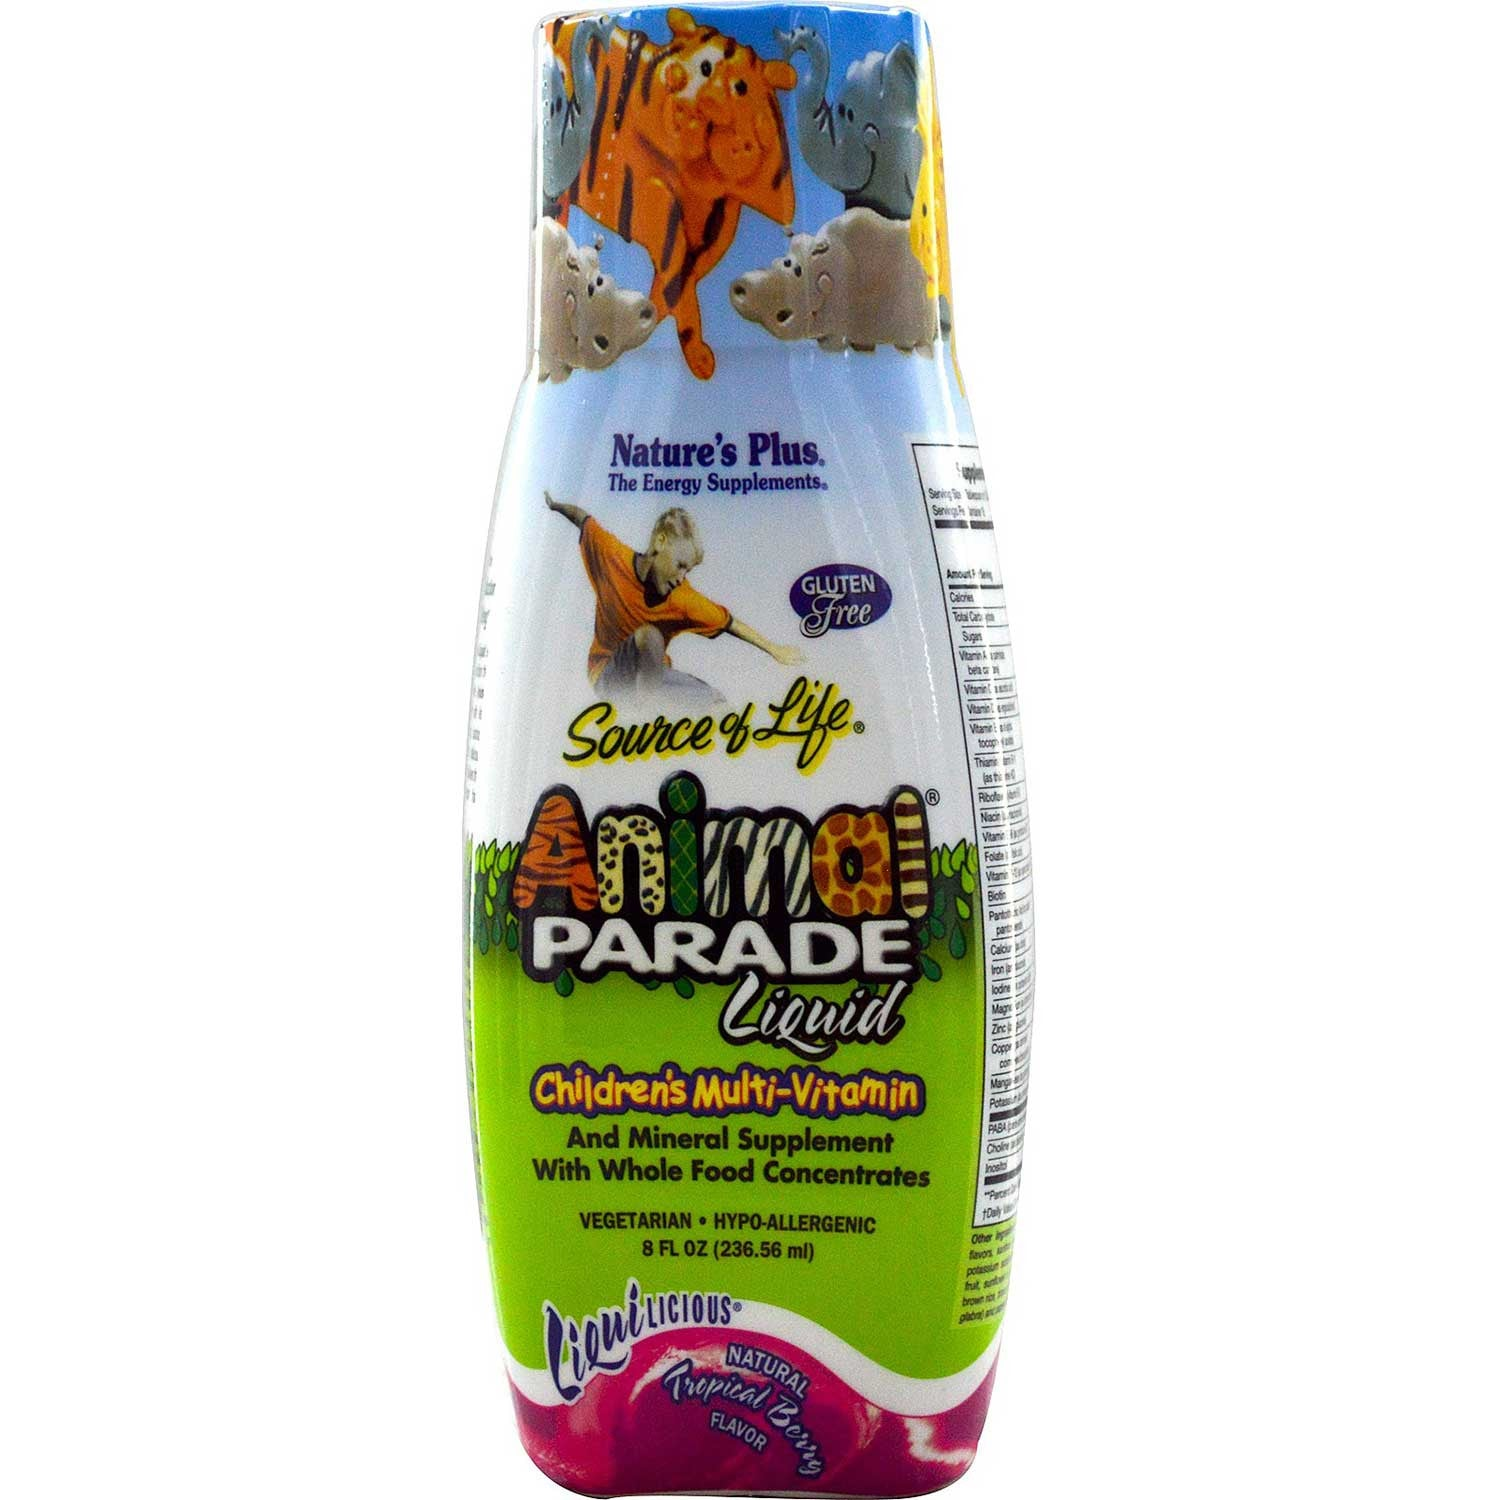 Natures Plus Source of Life Animal Parade Liquid - Tropical Berry (Travel Size), 236.56 ml-NaturesWisdom